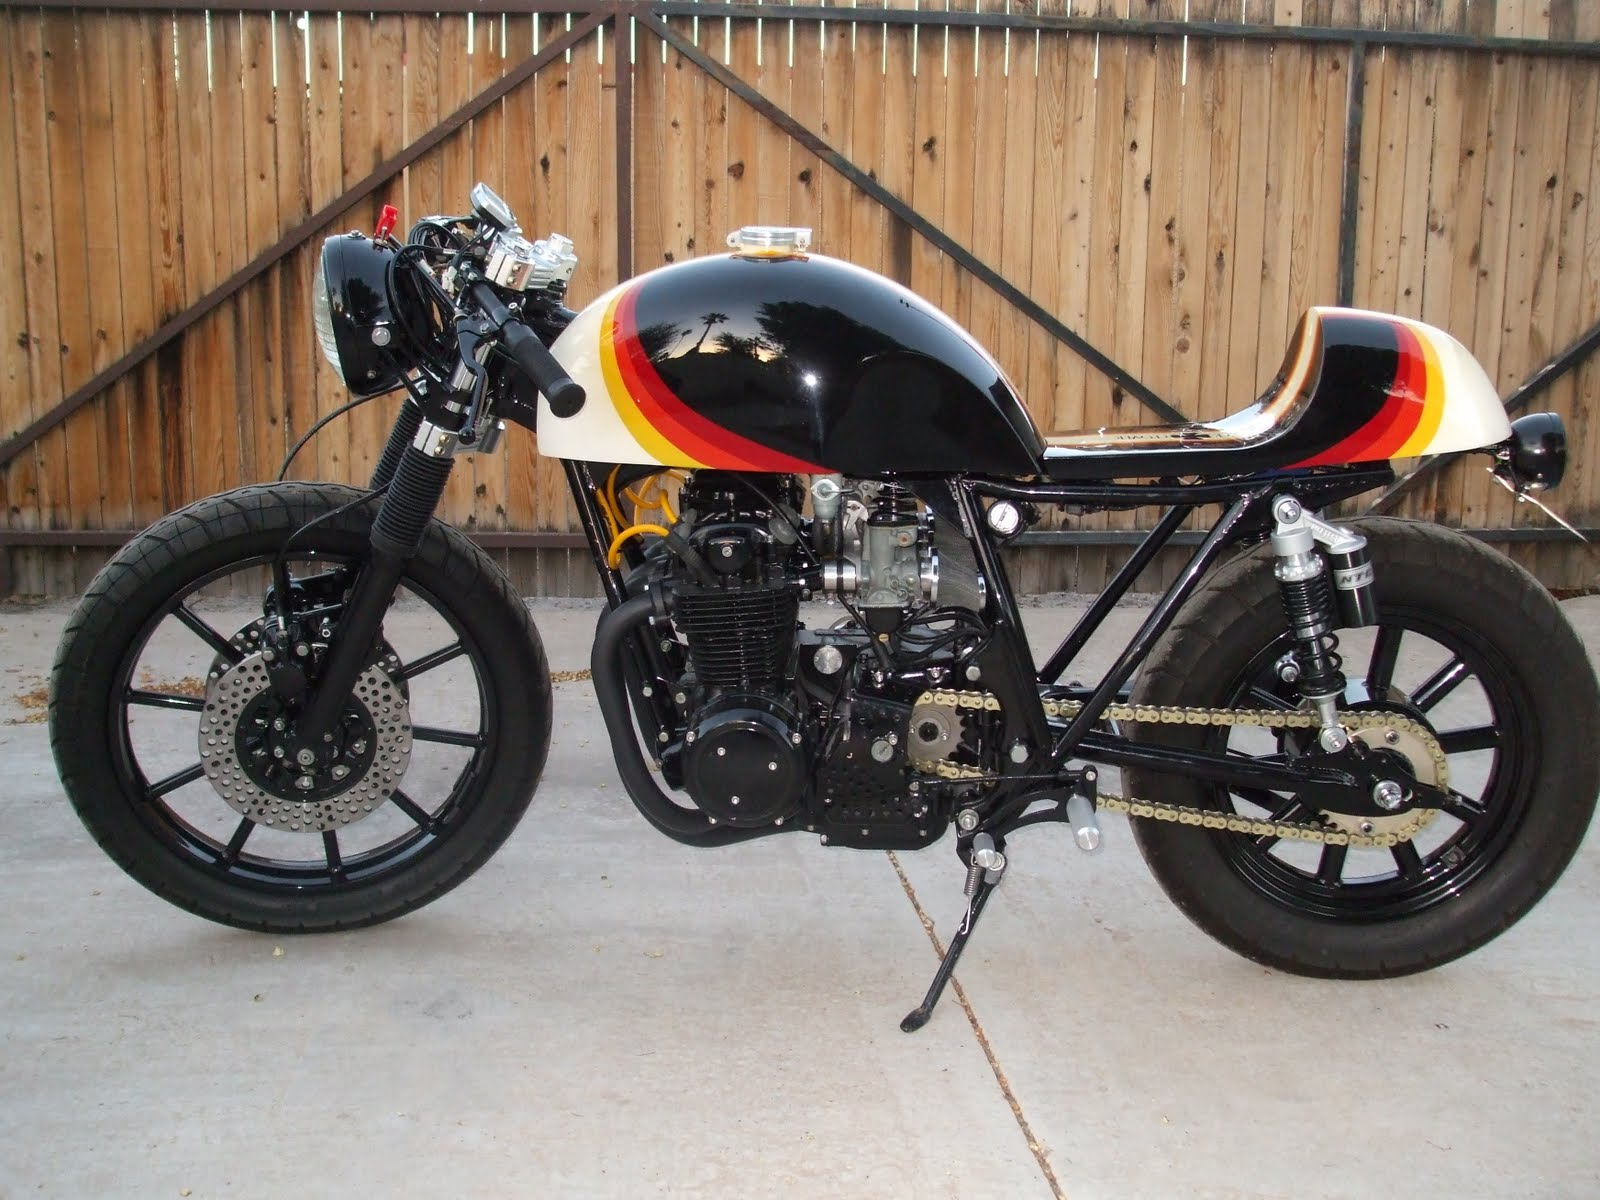 blogthis share to twitter share to facebook labels cafe racer honda title=